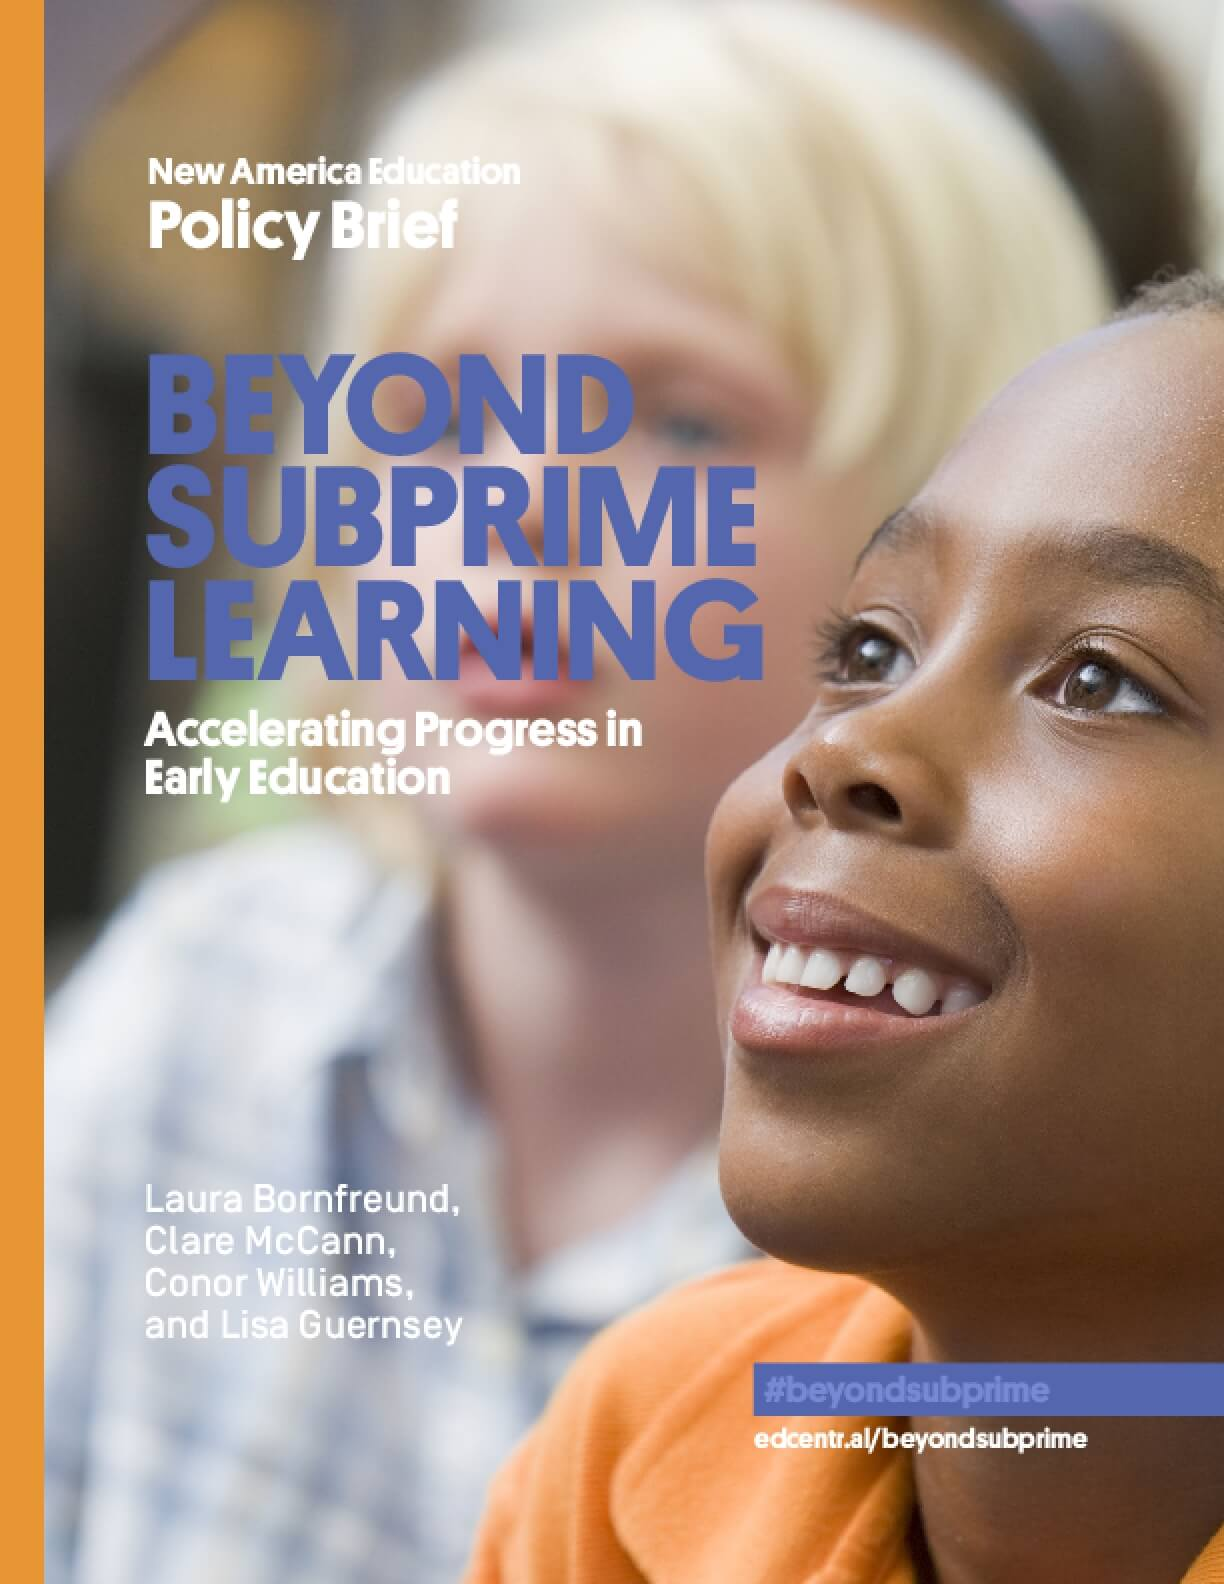 Beyond Subprime Learning: Accelerating Progress in Early Education